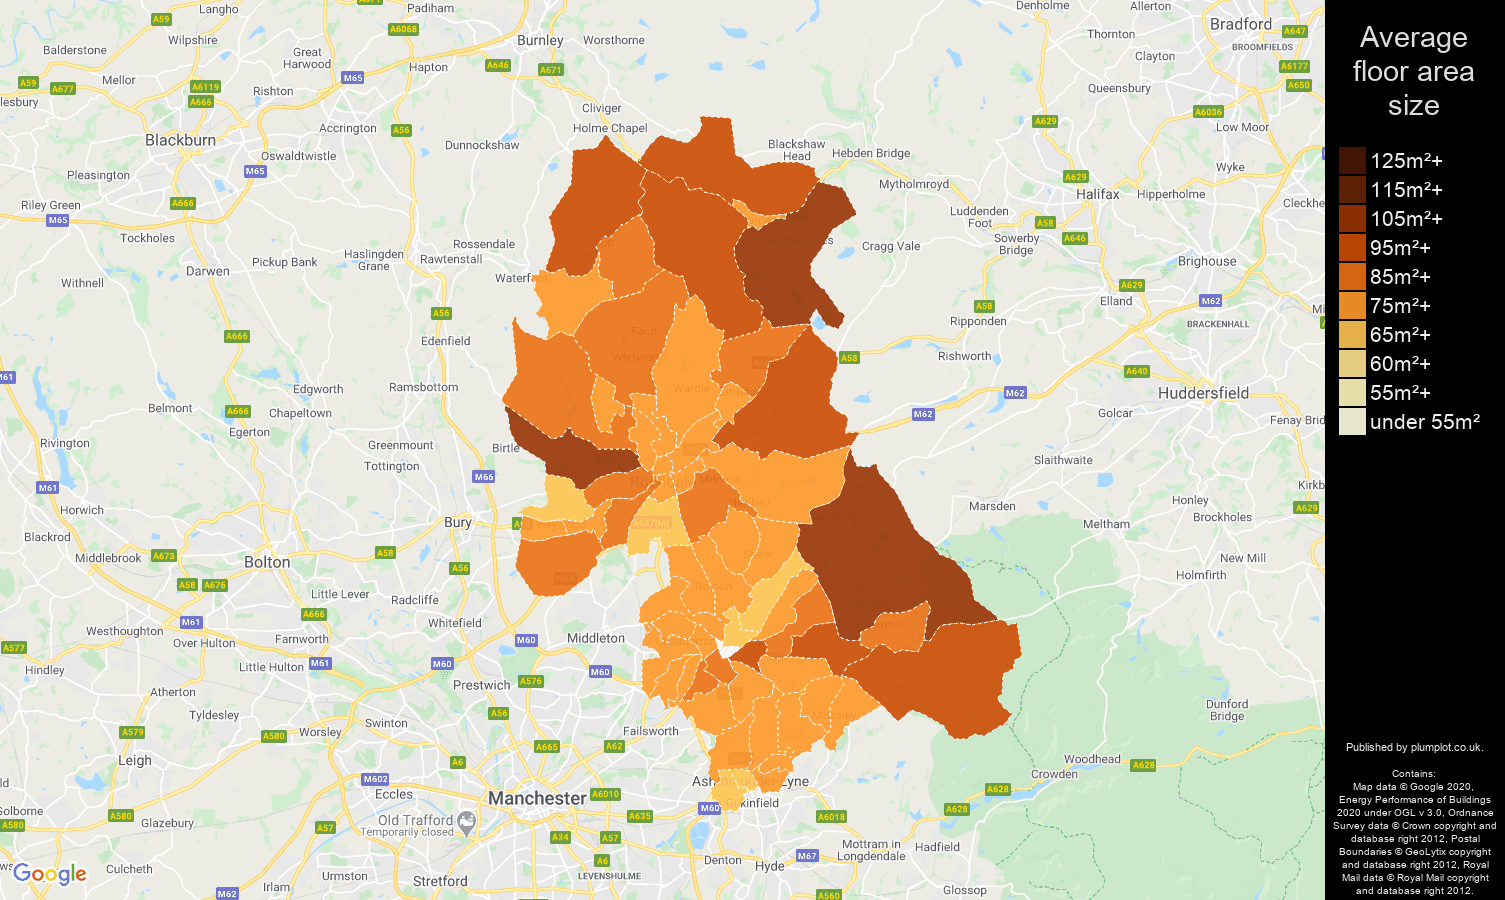 Oldham map of average floor area size of properties